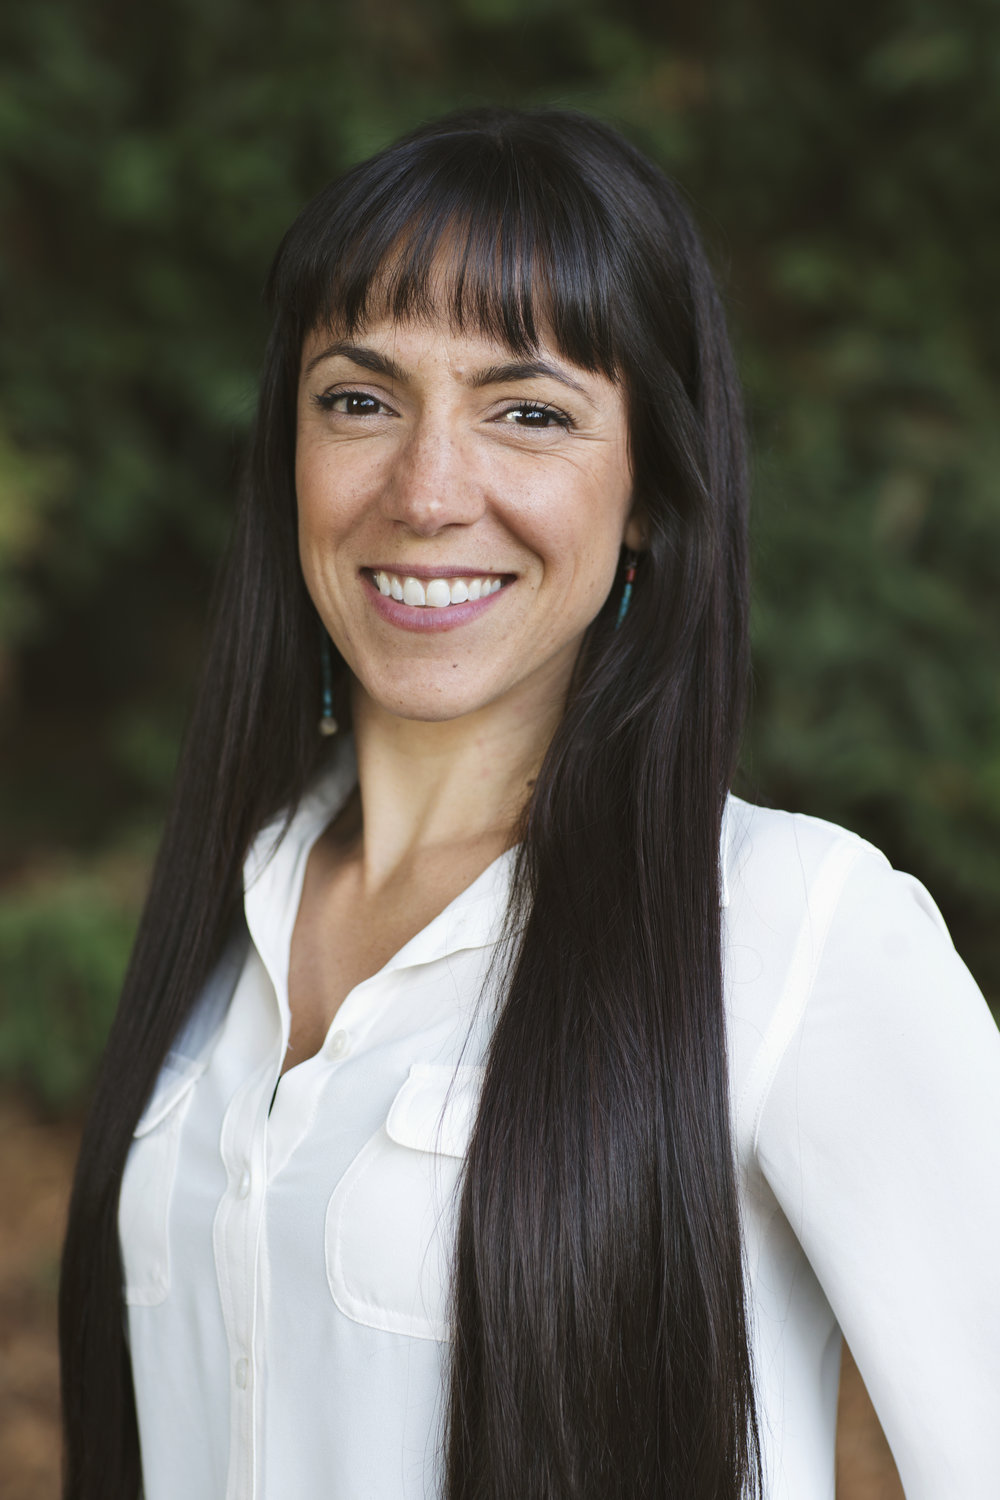 Amy Cordalis - Amy Cordalis is General Counsel for the Yurok Tribe. She comes from a long line of Yurok Indians from the village of Requa at the mouth of the Klamath River who have fought for Yurok rights. Her great uncle's Supreme Court case, Mattz v. Arnett (1973), confirmed the Yurok Reservation as Indian Country and set the stage for the Tribe's federally reserved fishing and water rights. Before returning home to work for the Yurok Tribe in 2014, Cordalis worked for the Native American Rights Fund and Berkey Williams, LLP on a wide range of Indian law issues. Cordalis did her undergraduate work at the University of Oregon and received her J.D. from the University of Denver College of Law.